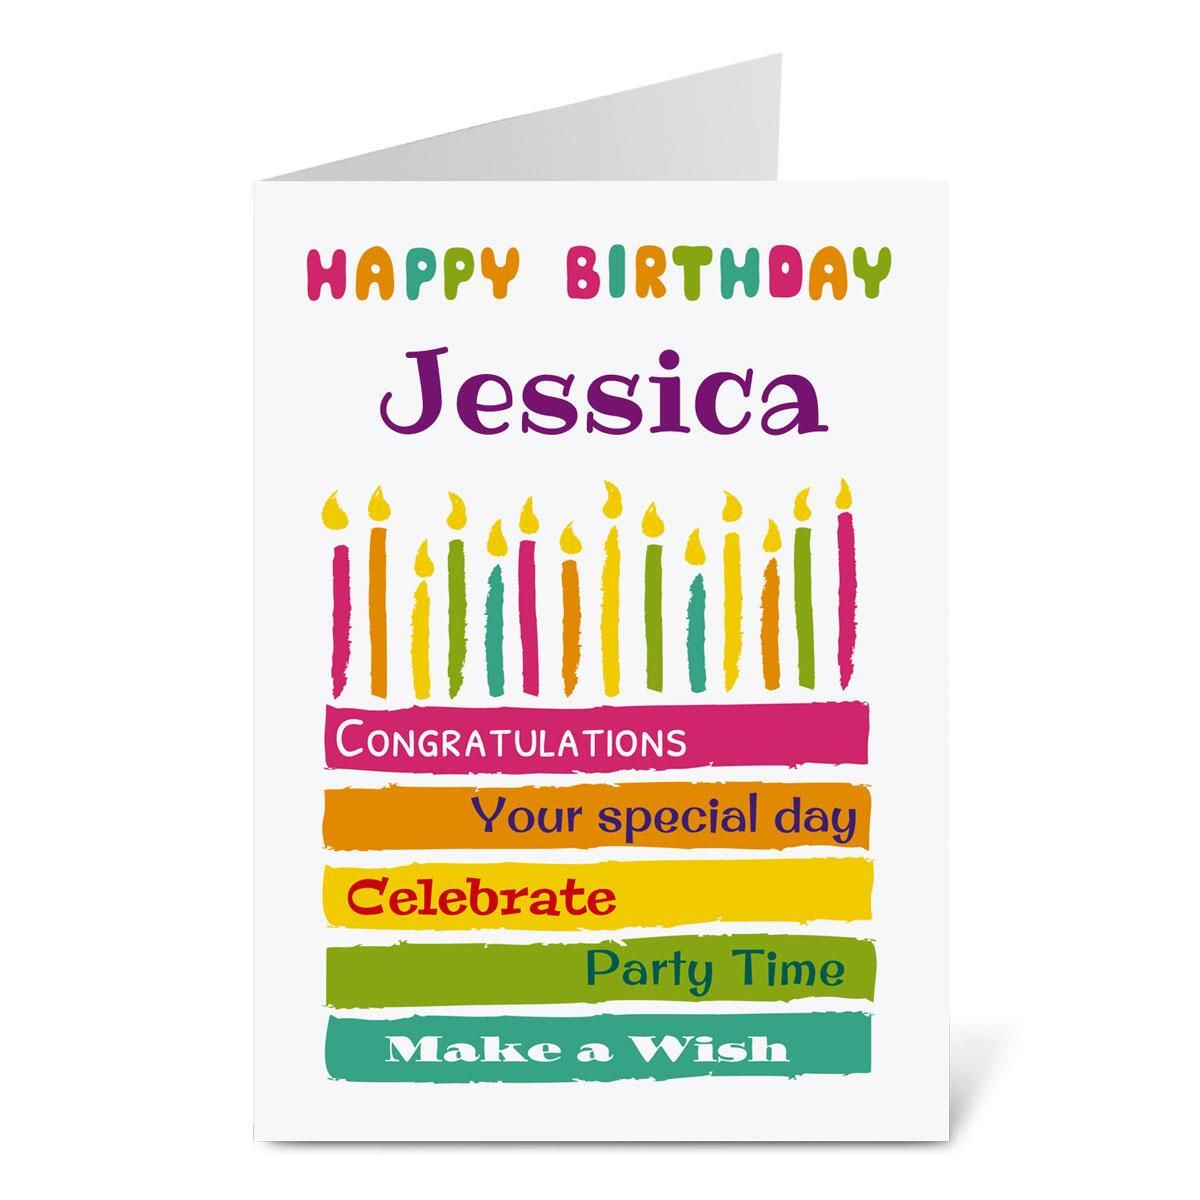 Cool Cake Birthday Create-A-Card